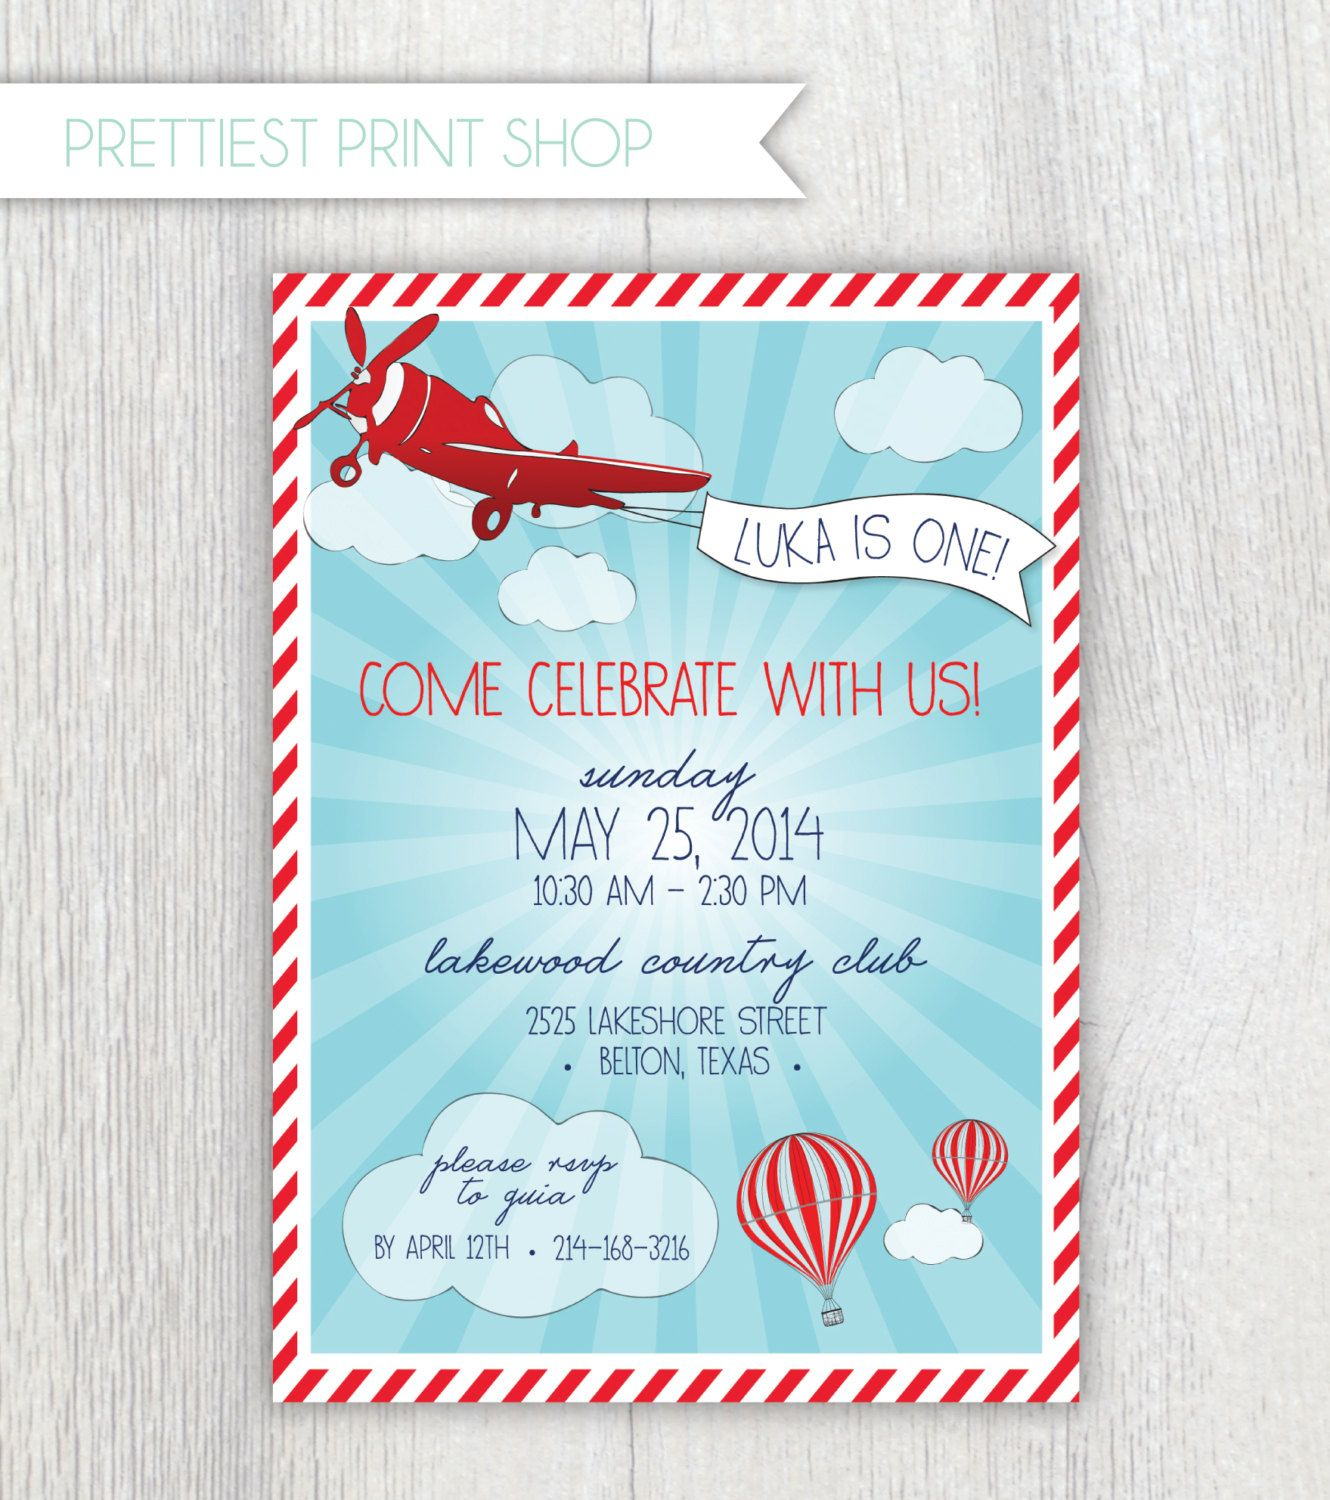 Printable invitation - Vintage airplane and hot air balloon party ...